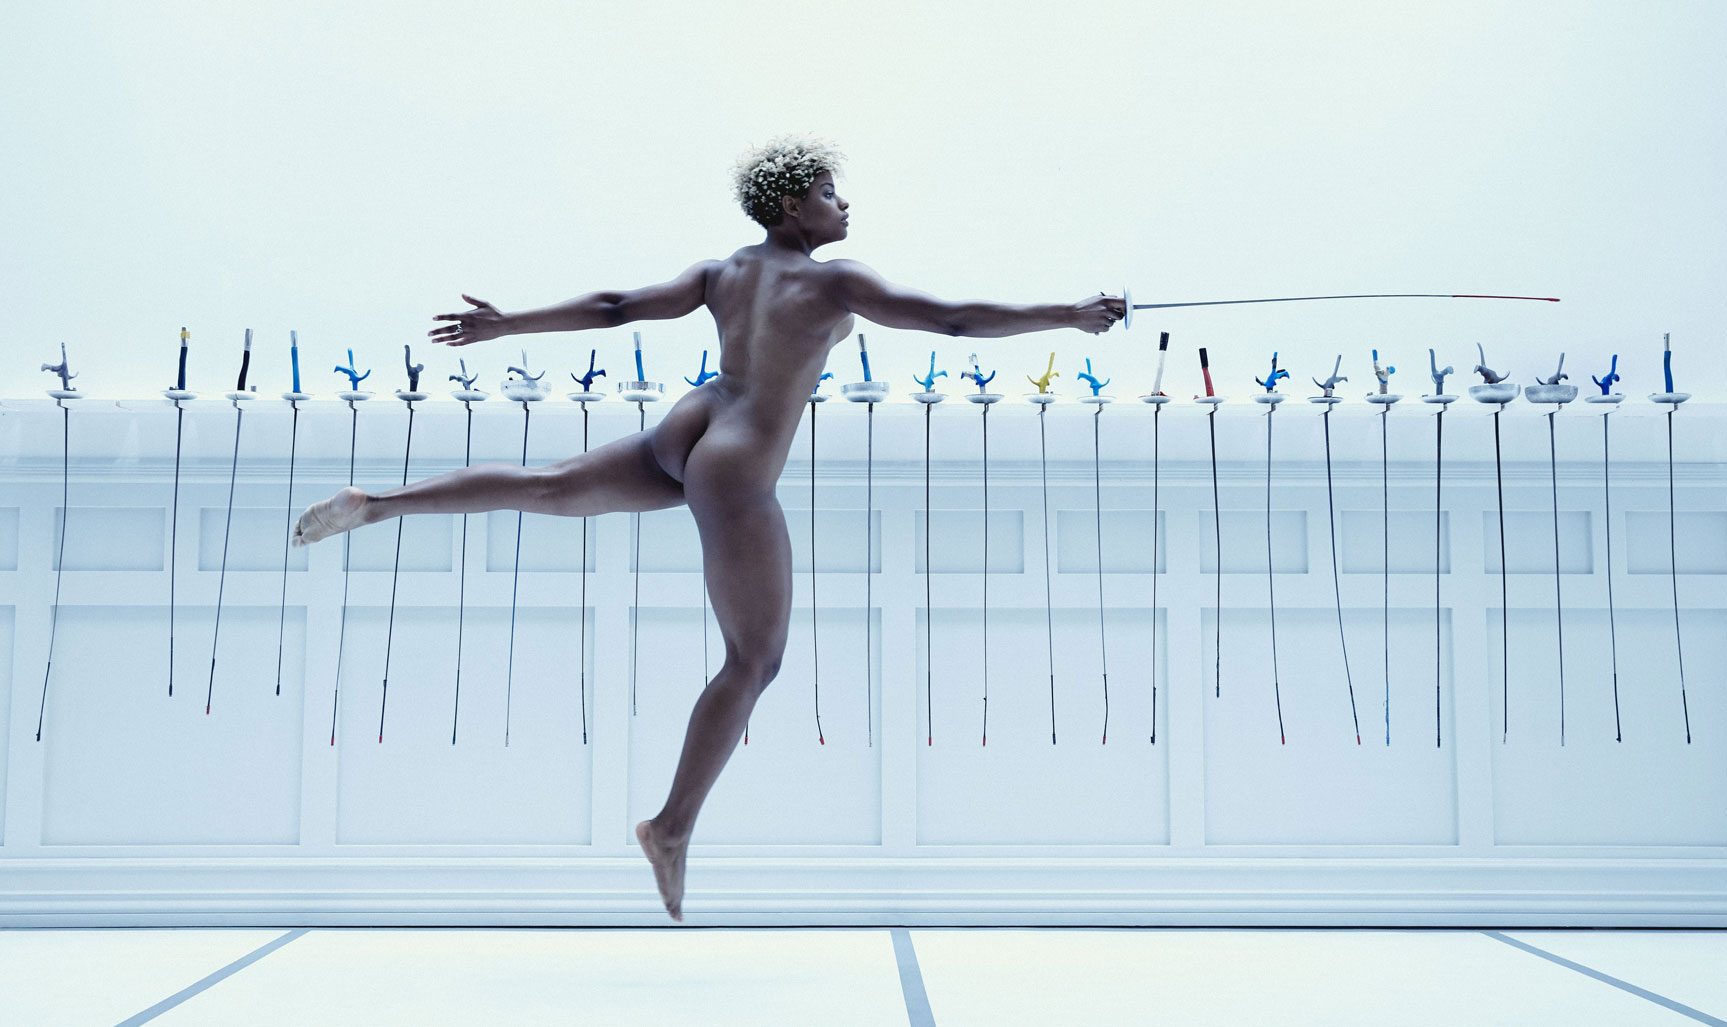 ESPN Magazine The Body Issue 2016 - Nzingha Prescod / Нзинга Прескод - Культ тела журнала ESPN